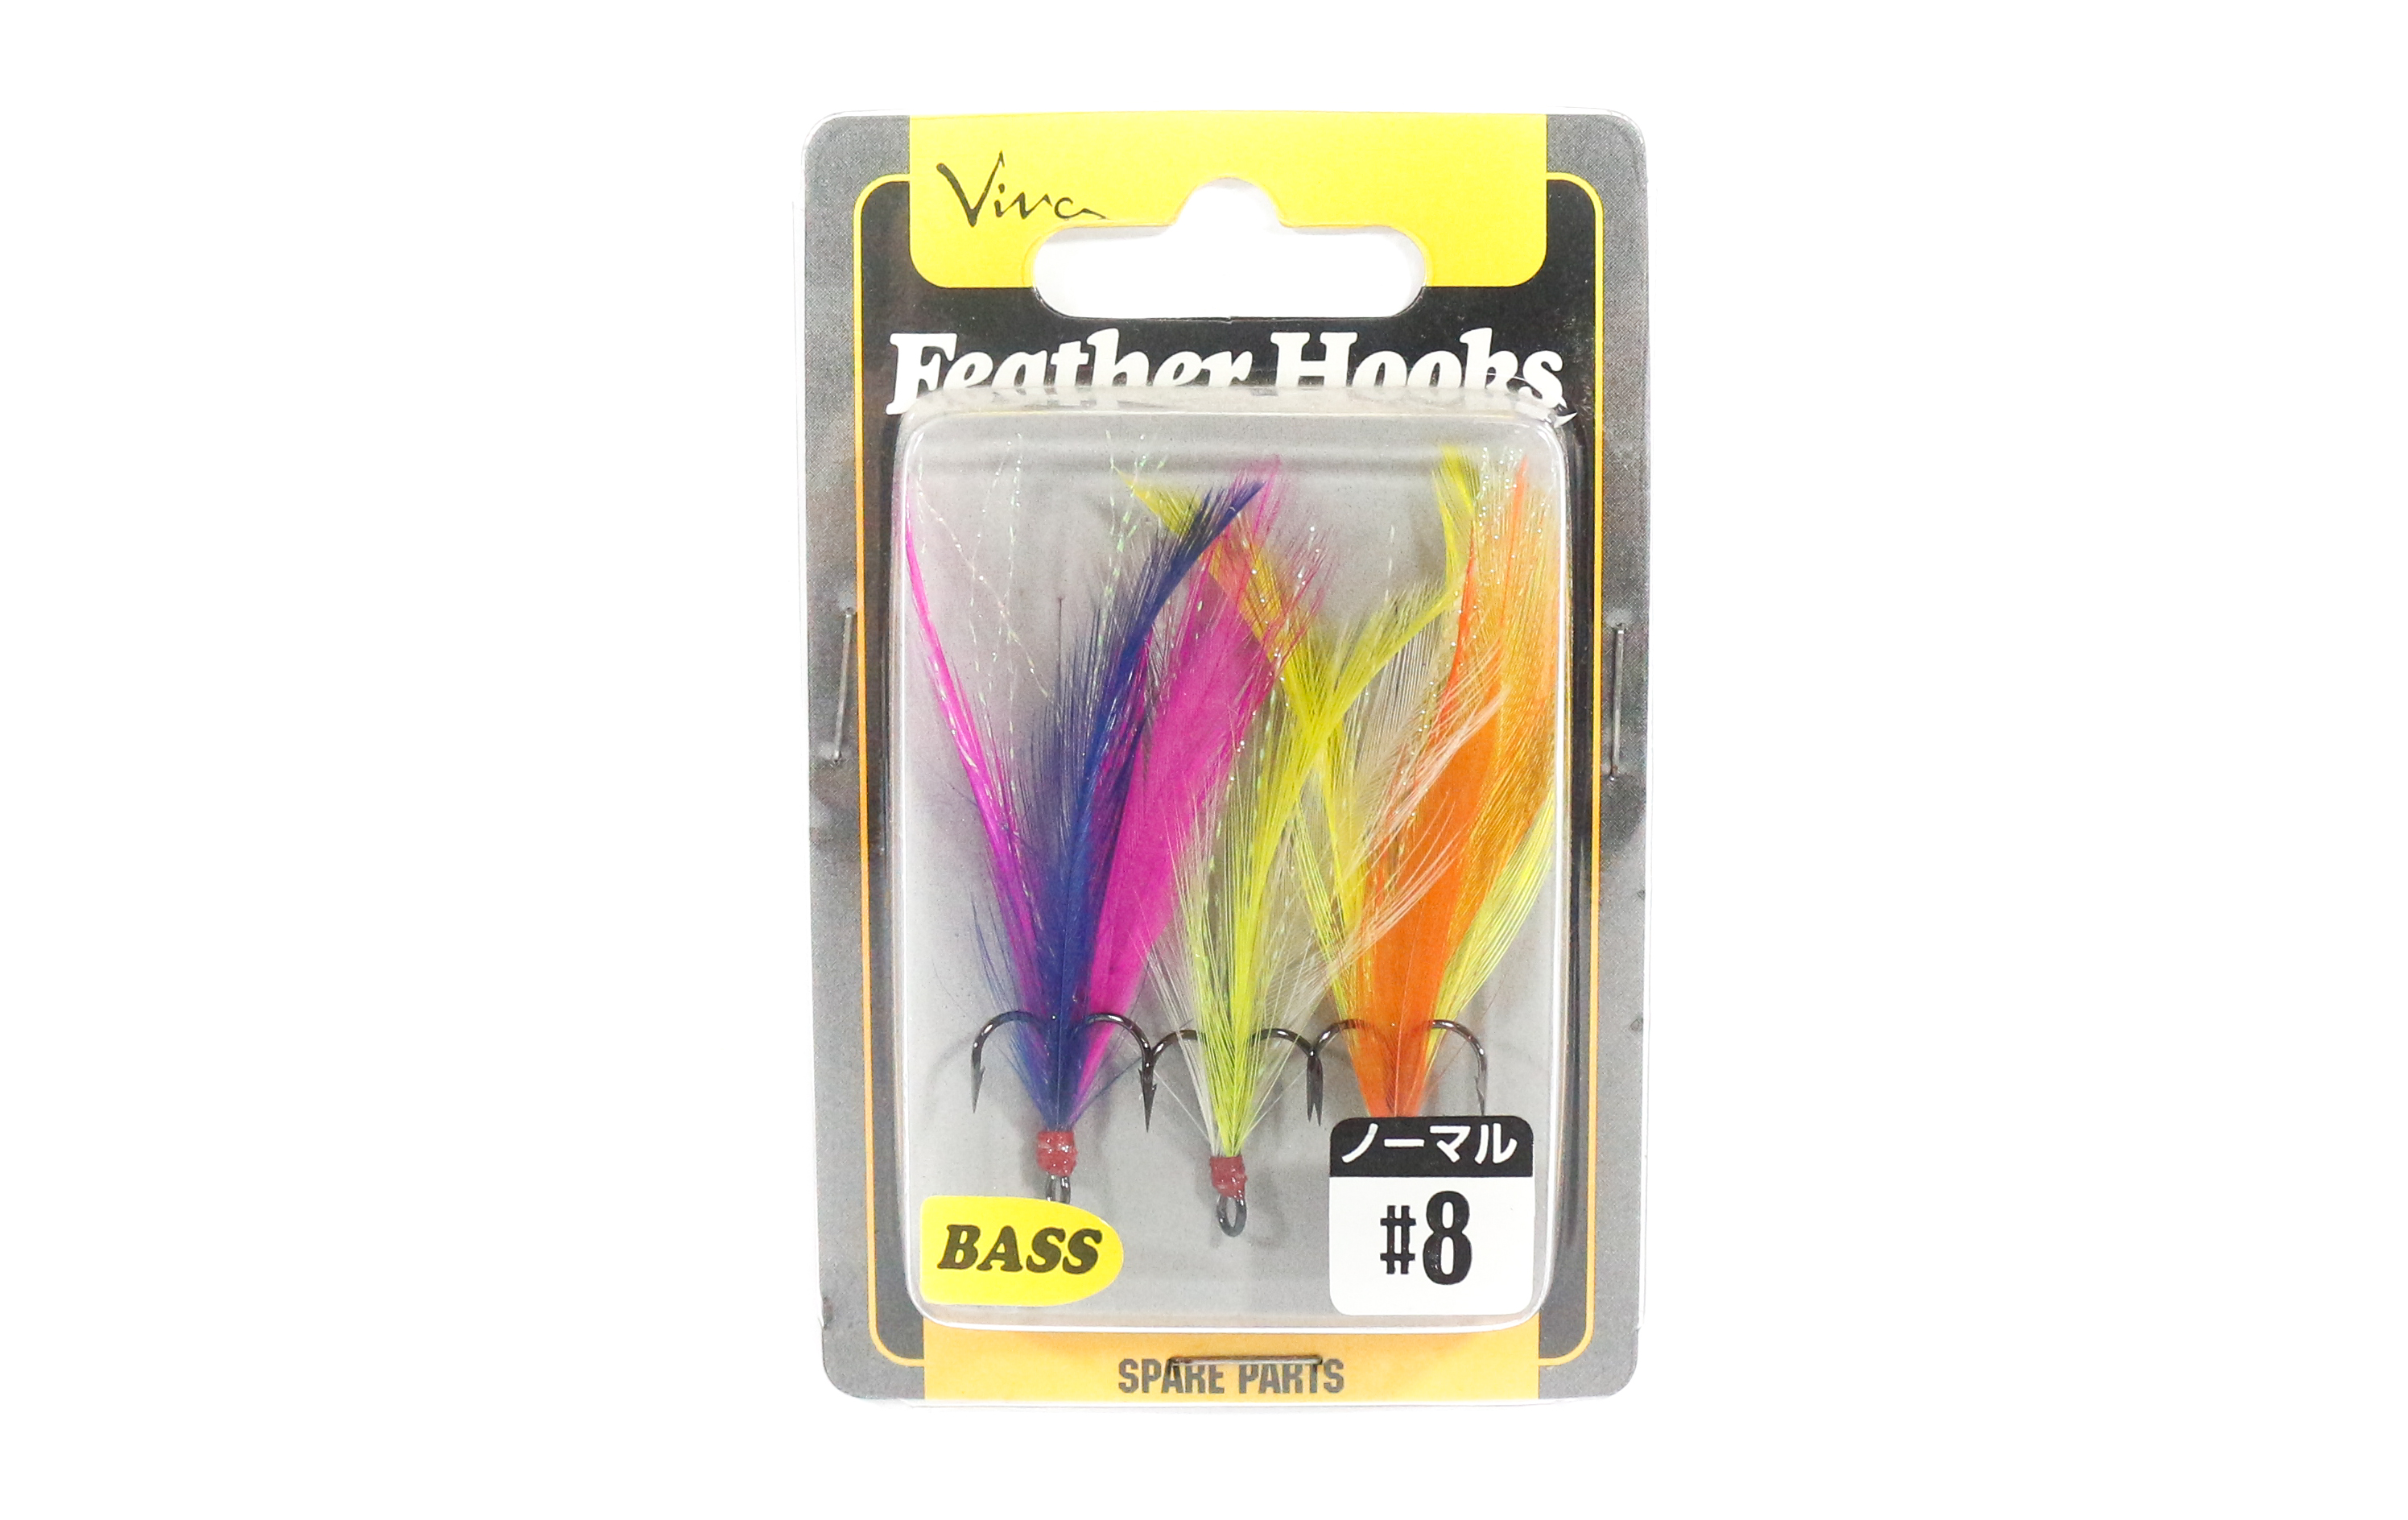 Viva Feather Hook Spare Tail Hooks for Bass Size 8 FH1 (4614)